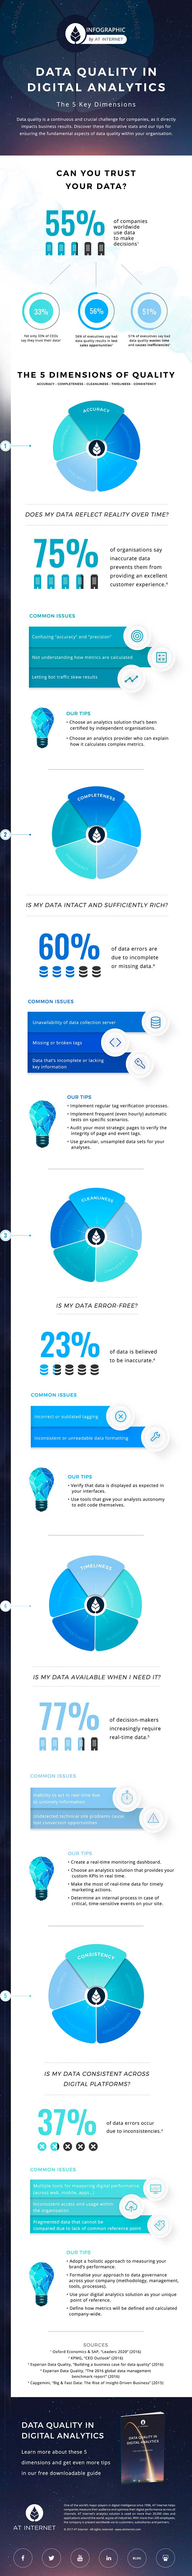 Infographic 5 keys to Data Quaty in Digital Analytics